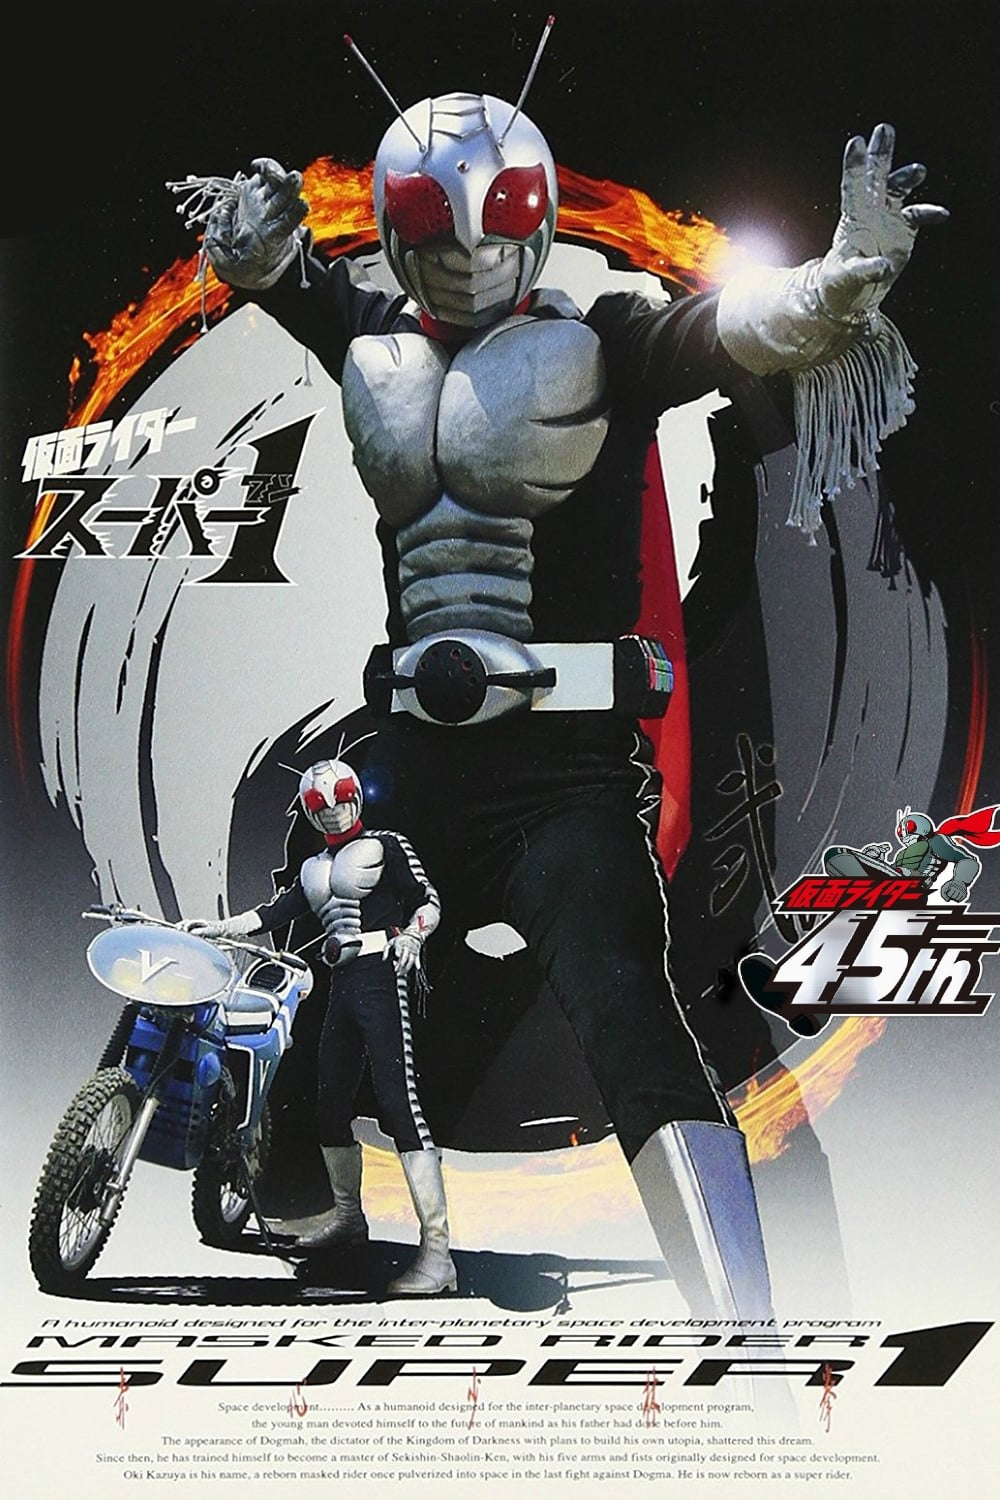 Kamen Rider - Season 21 Episode 2 : Greed, Ice Candy, Present Season 7